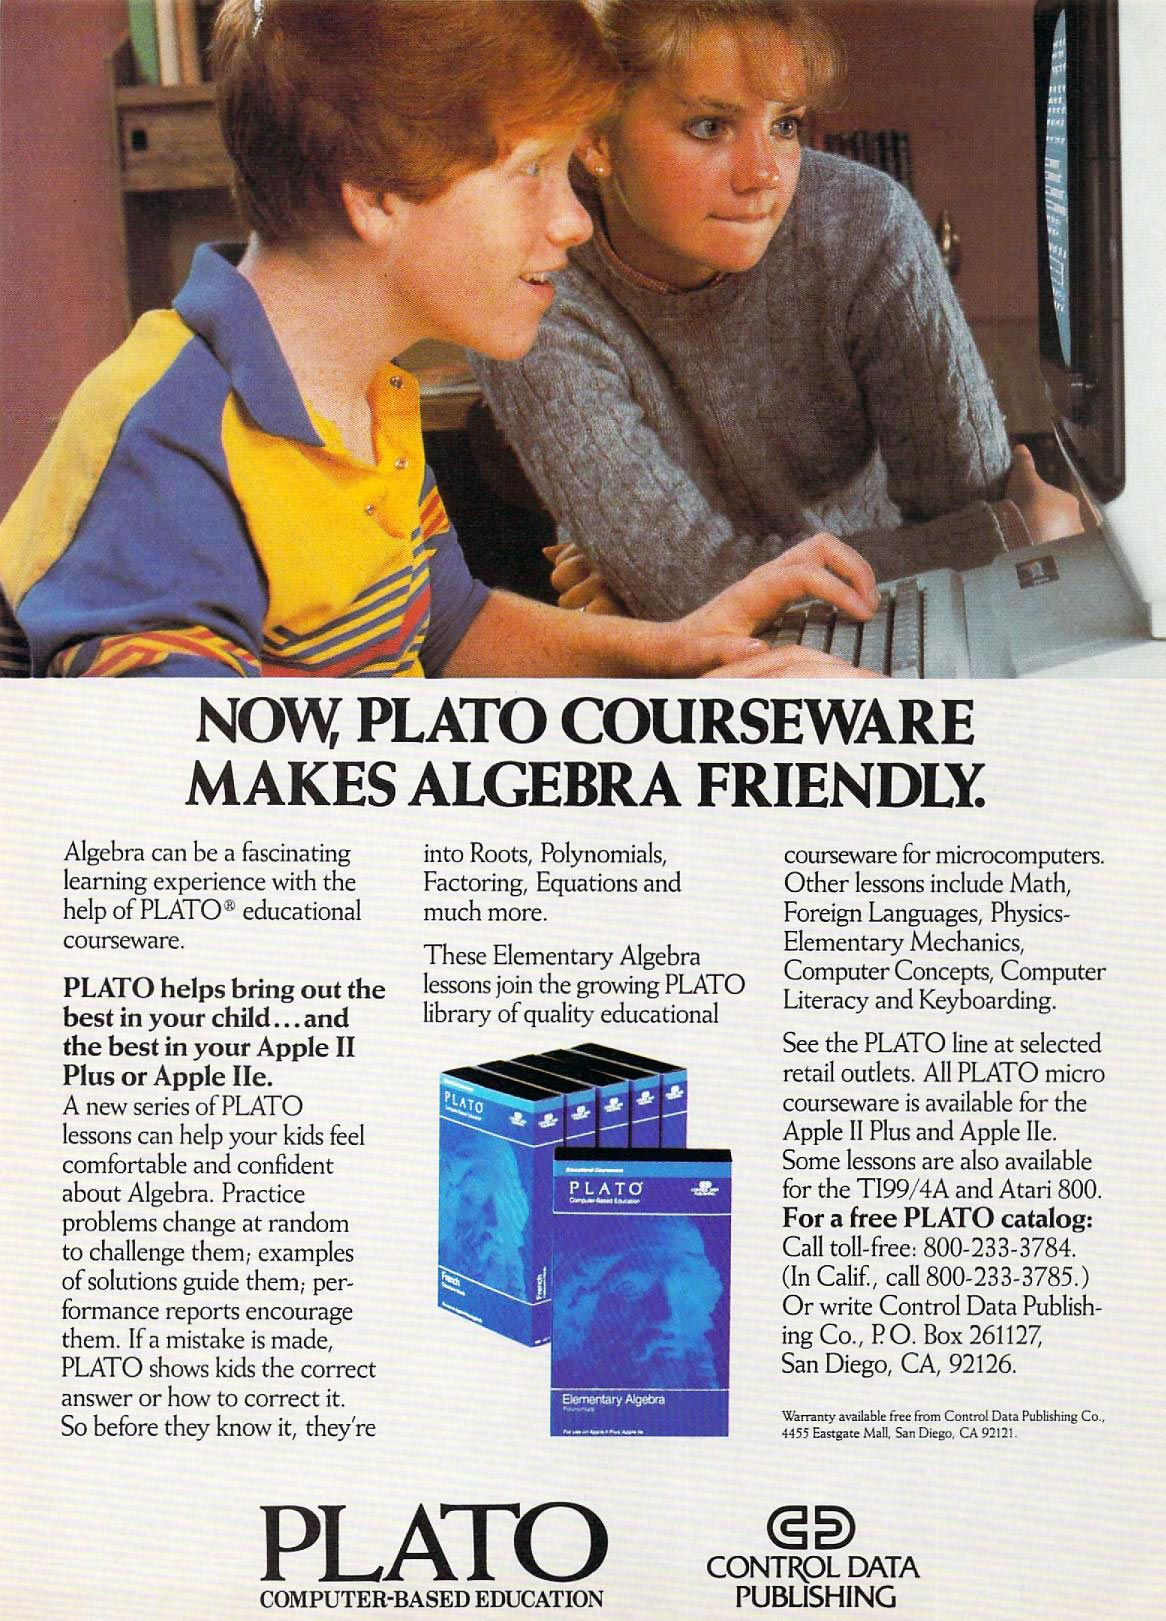 Plato, educational software for computers